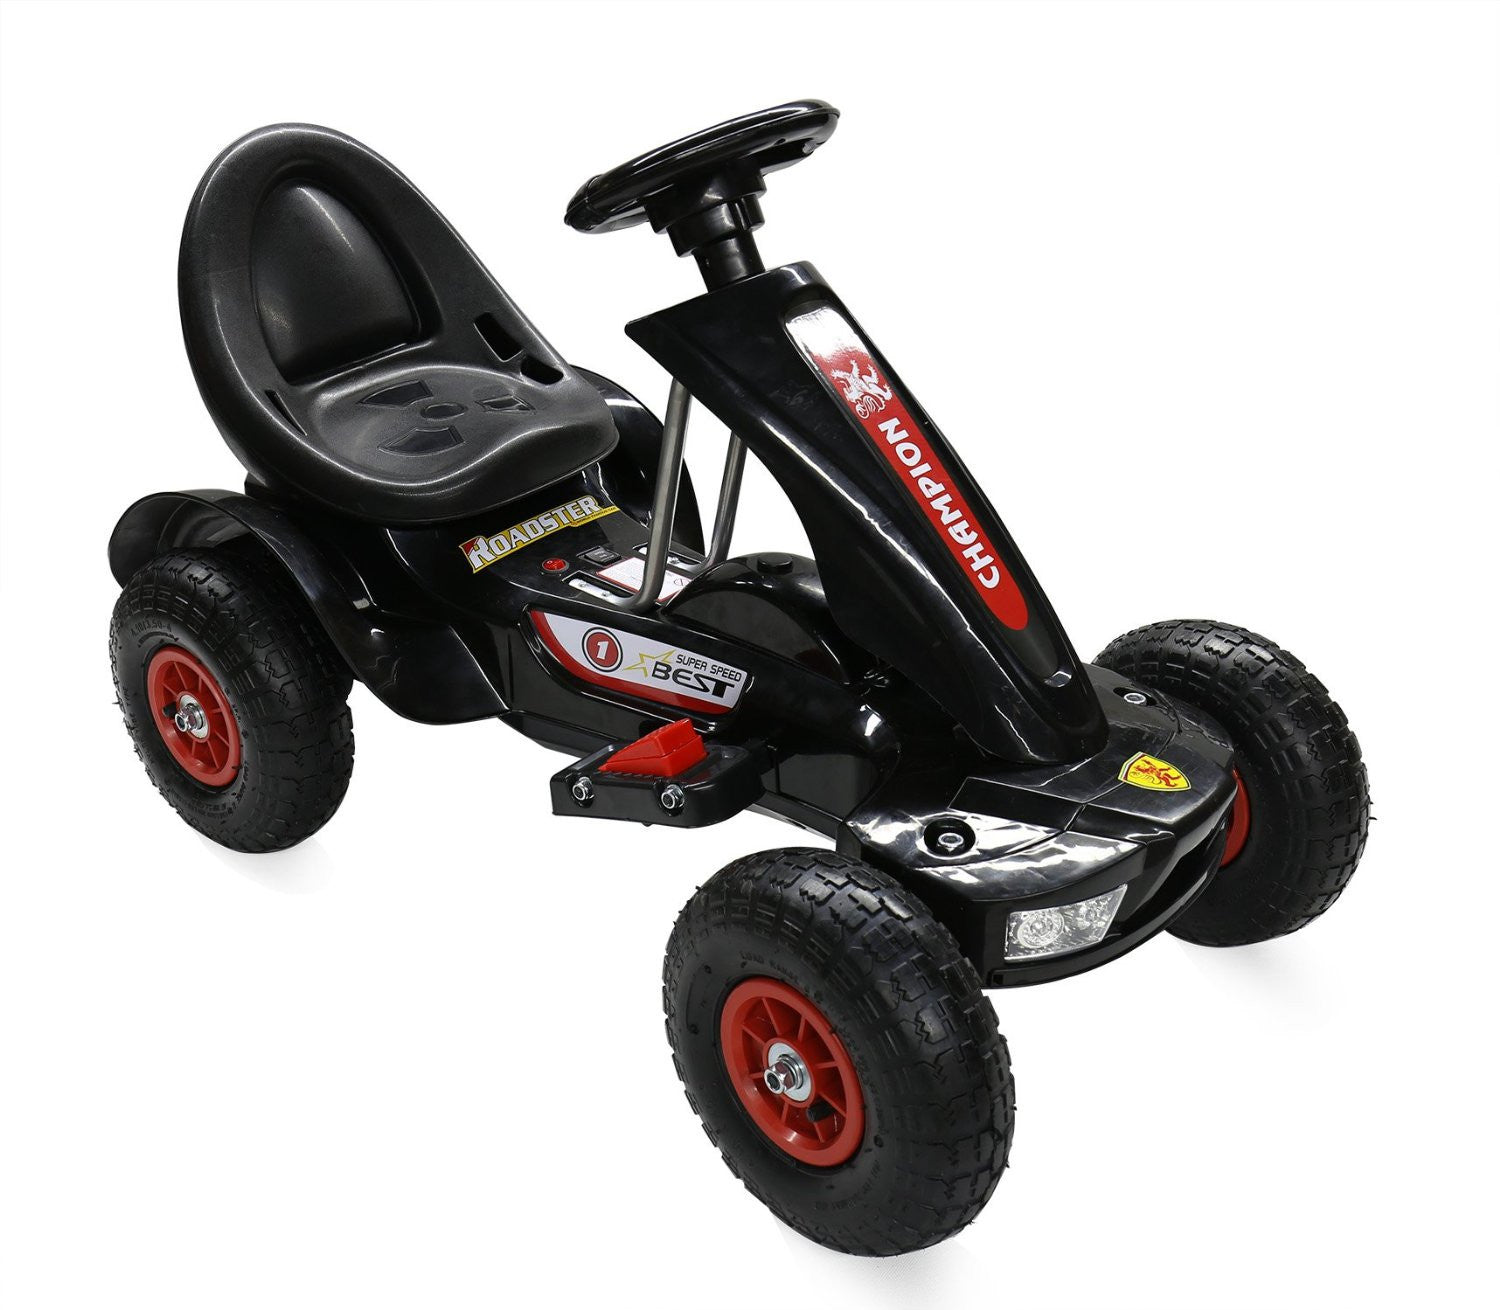 6V 7A Battery Two Motors Powered Electric Go Kart Rubber Air Wheels (Model: S1588) BLACK - RICCO® Toys